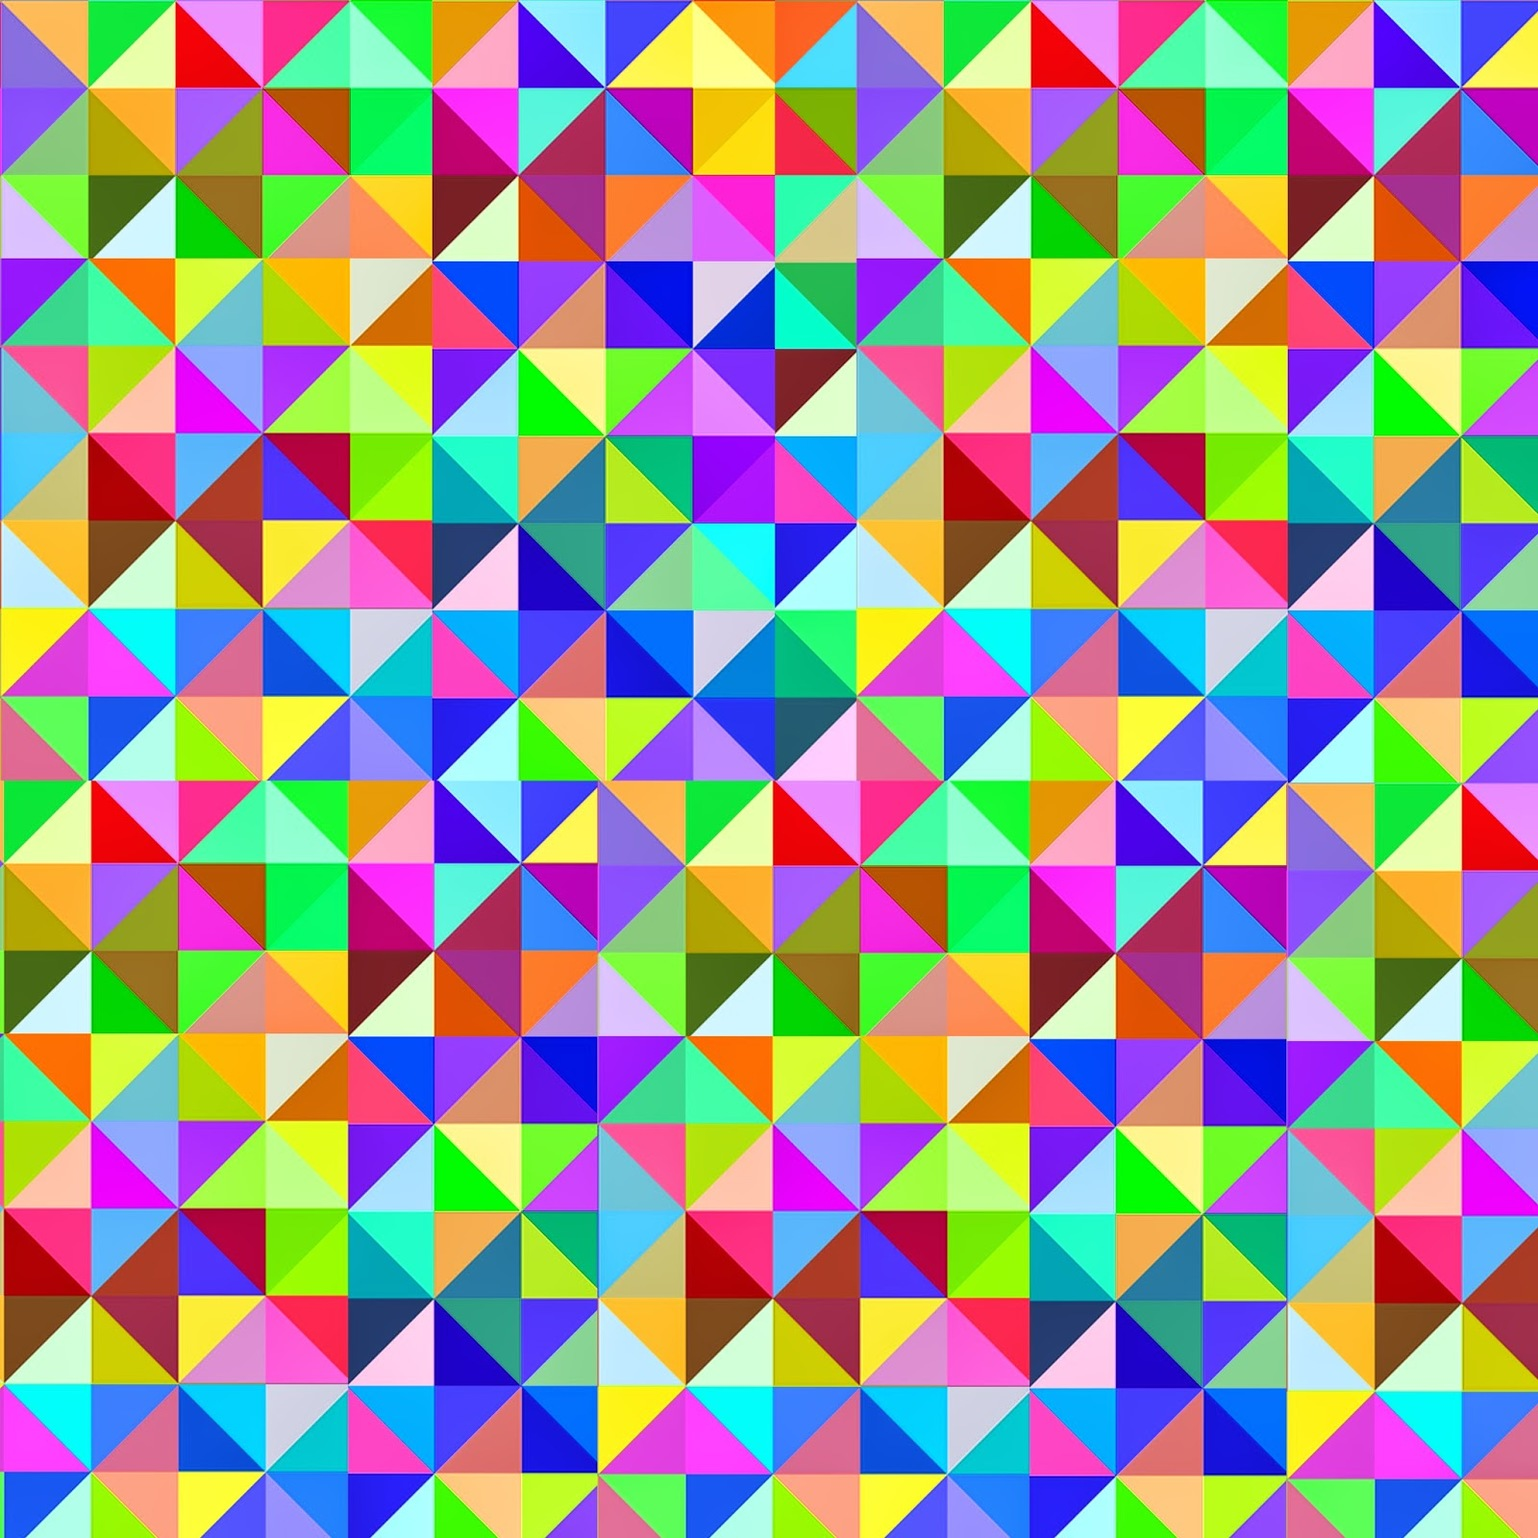 Doodlecraft: Gigantic Geometric Colorful Triangle FREEBIES Printables! - Stock Image